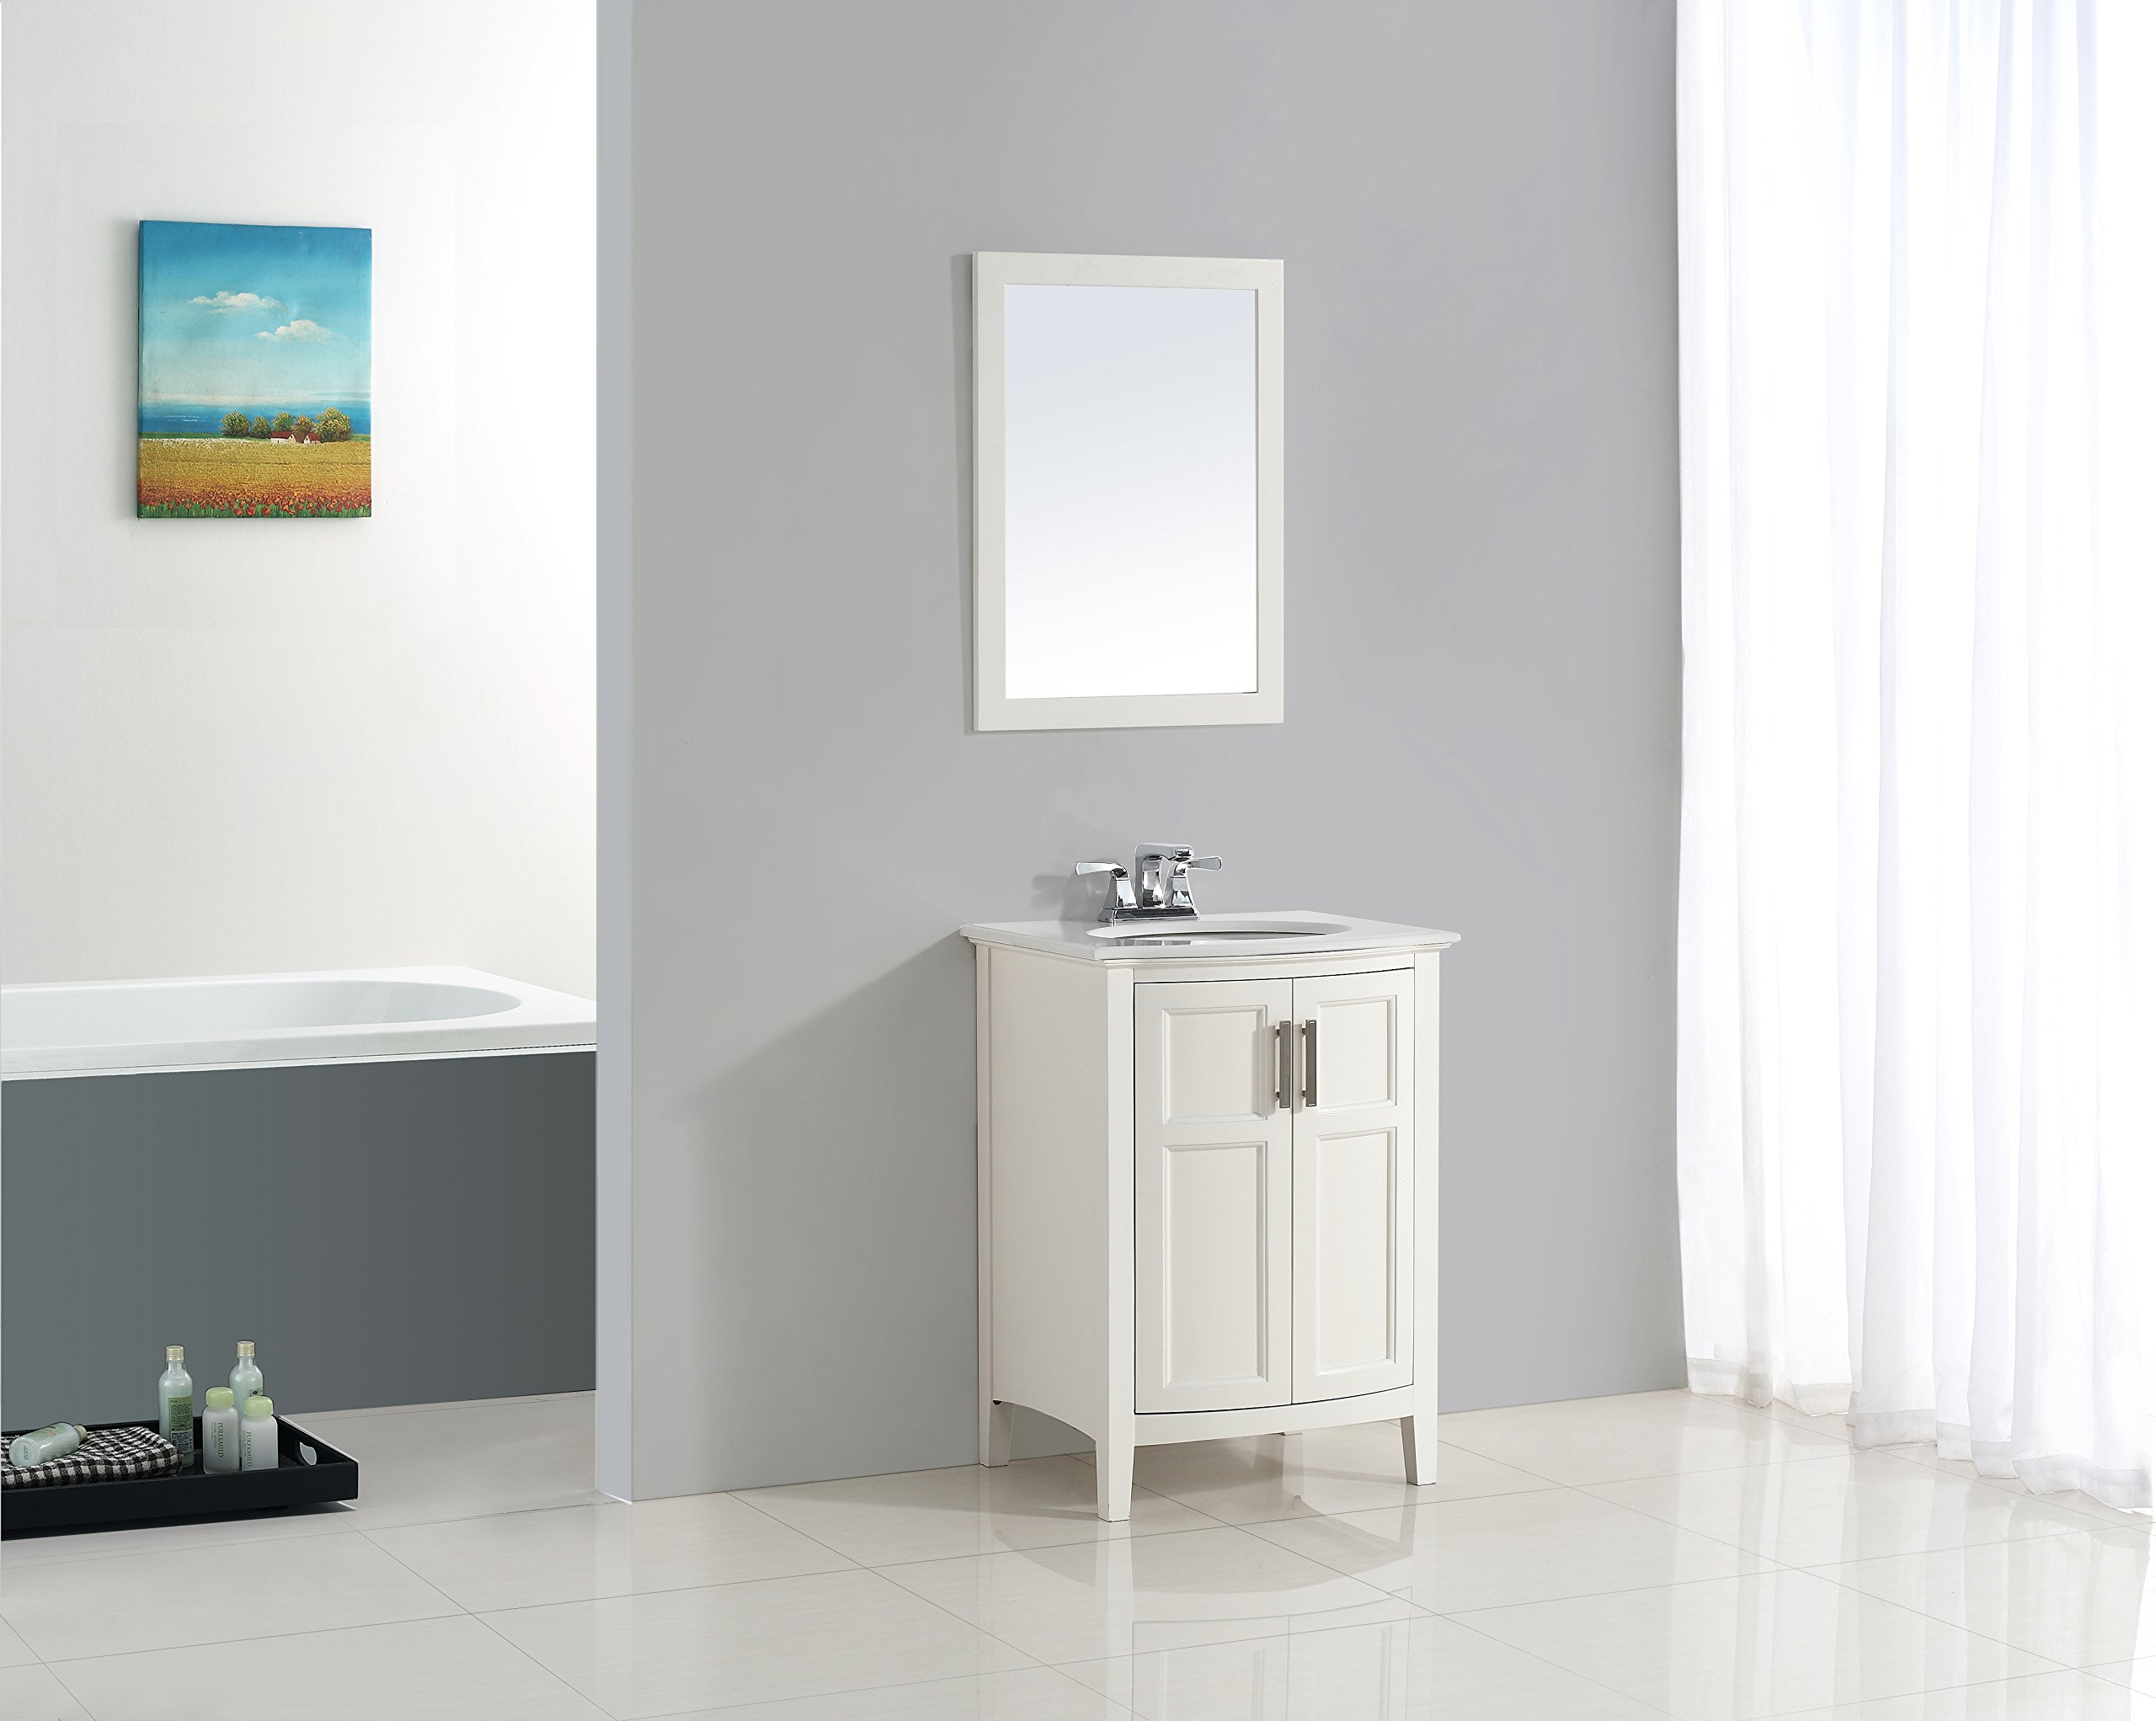 Simpli Home Winston 24'' Bath Vanity Rounded Front with Quartz Marble Top, Soft White by Simpli Home (Image #2)